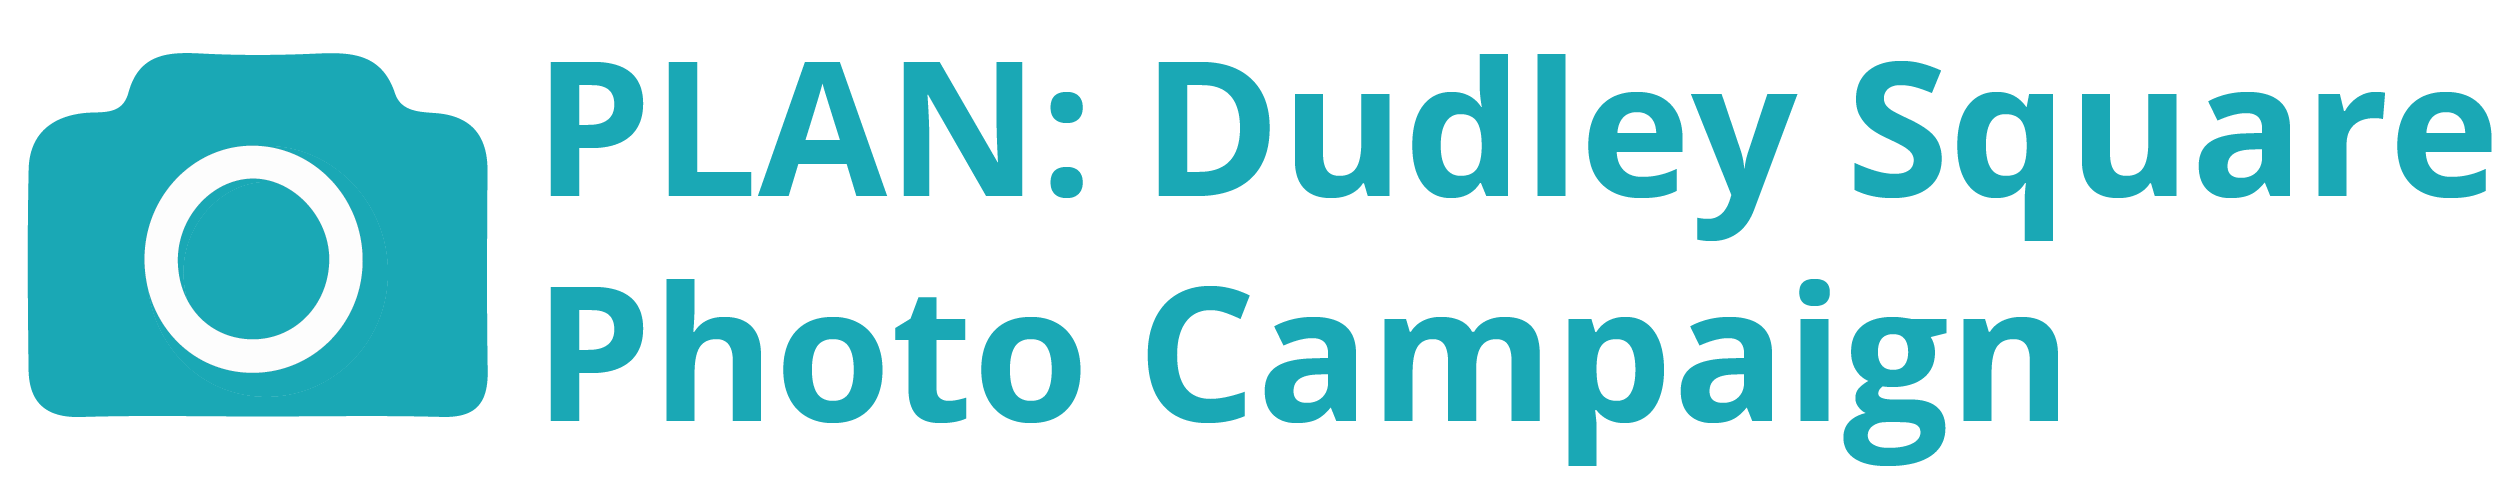 PLAN: Dudley Photo Campaign